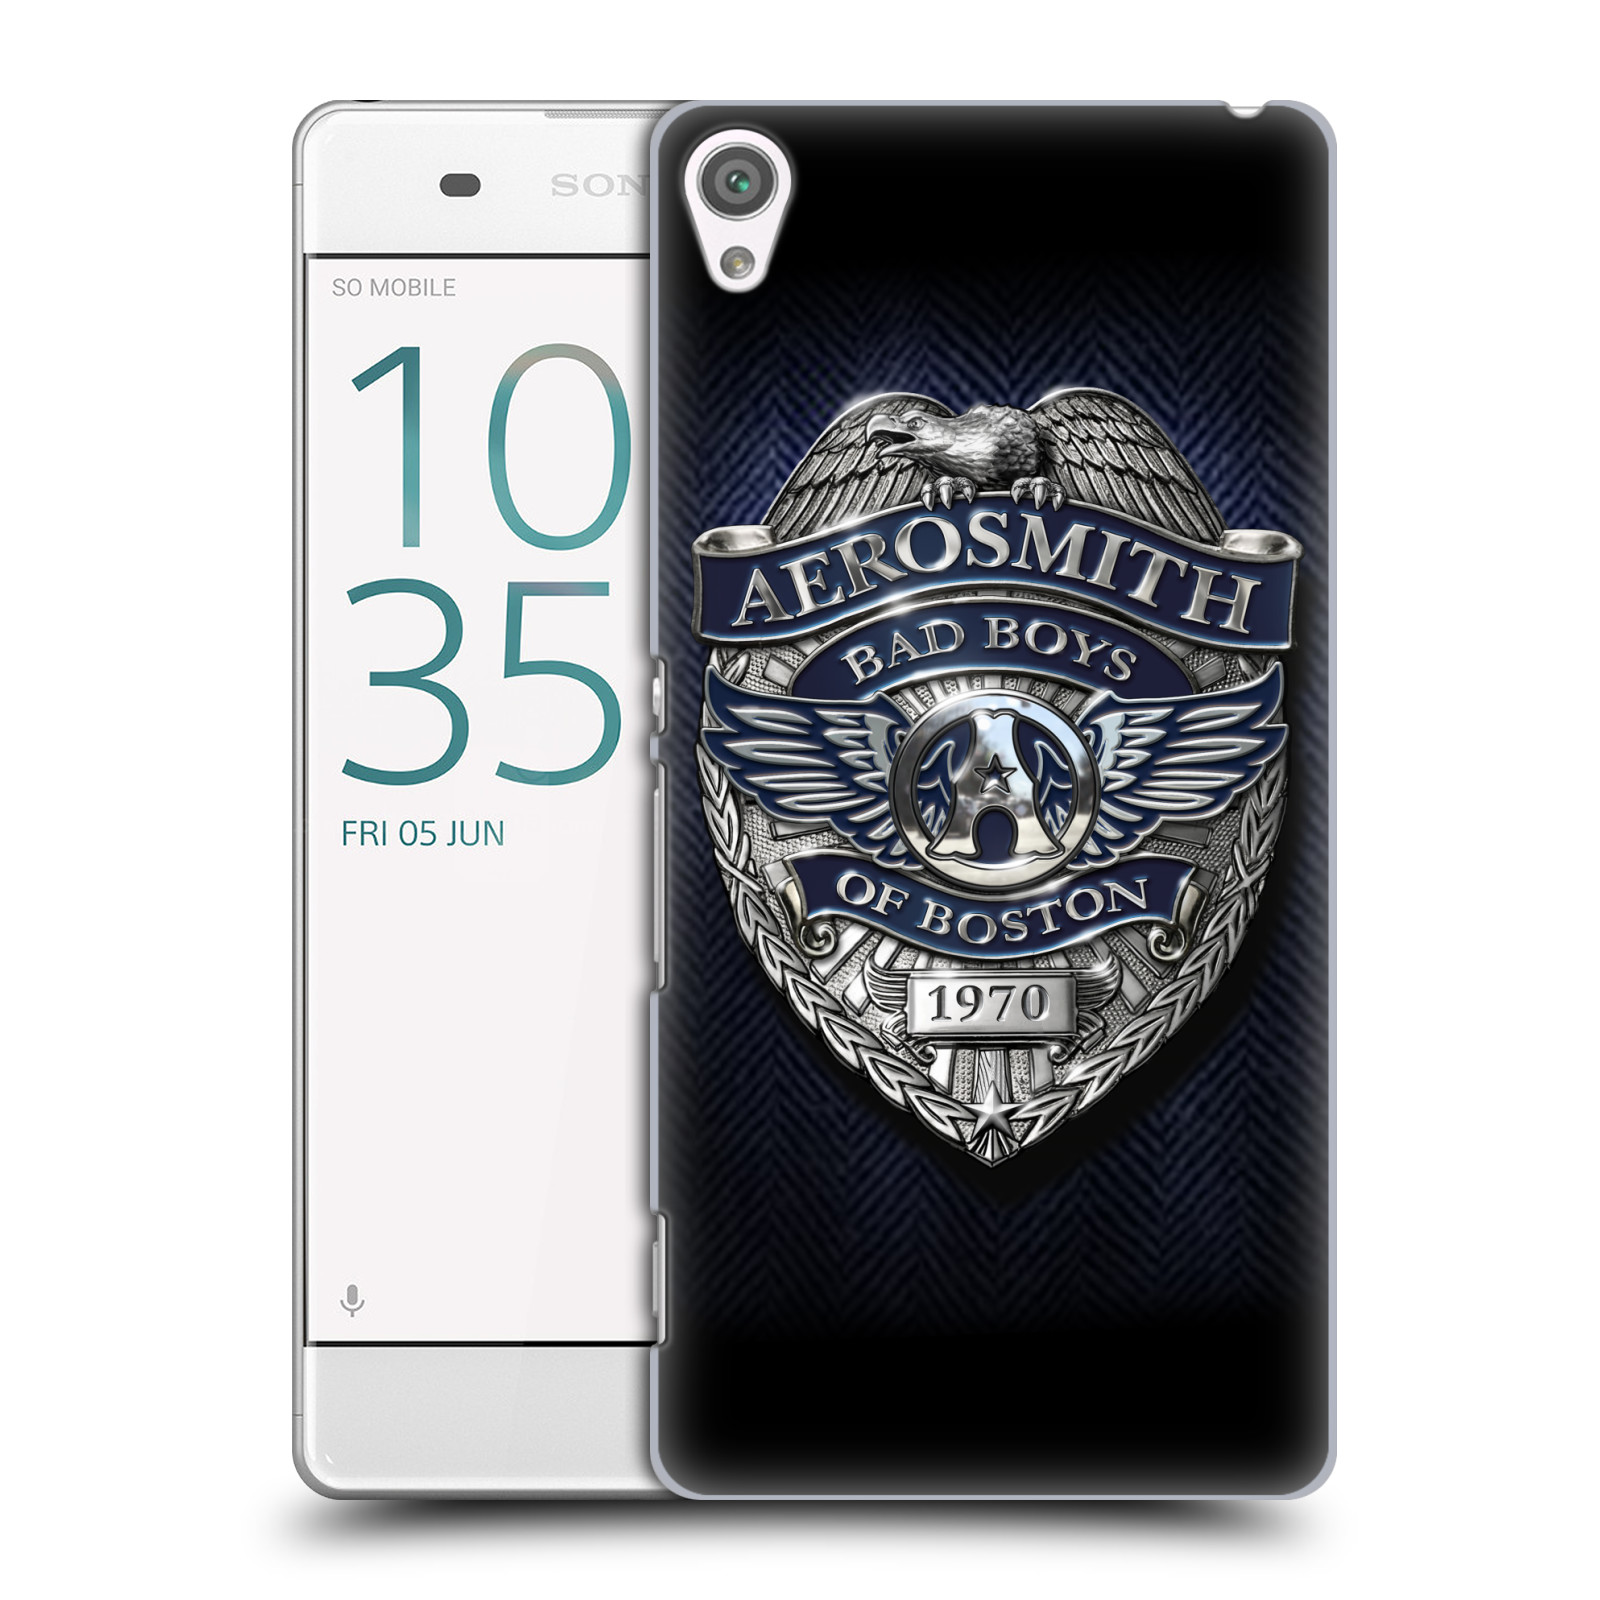 Plastové pouzdro na mobil Sony Xperia XA HEAD CASE - Aerosmith - Bad Boys of Boston